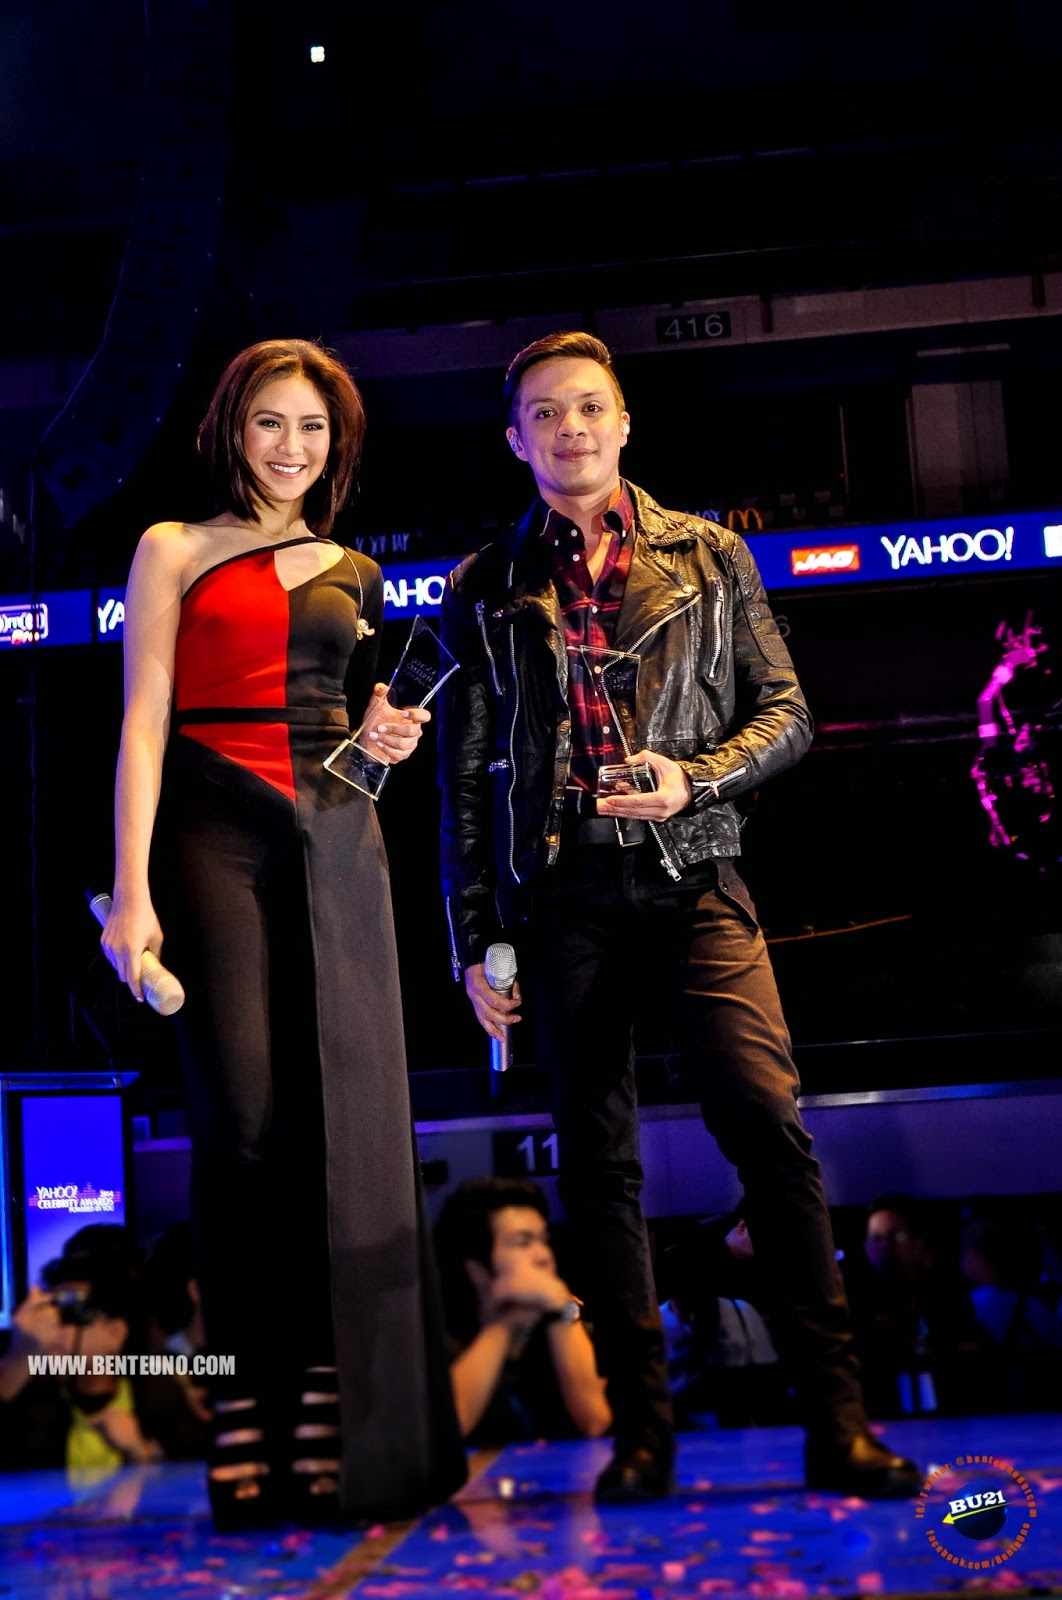 Bamboo, Male Performer of the year and Sarah Geronimo, Female Performer of the year at Yahoo Celebrity Awards 2014